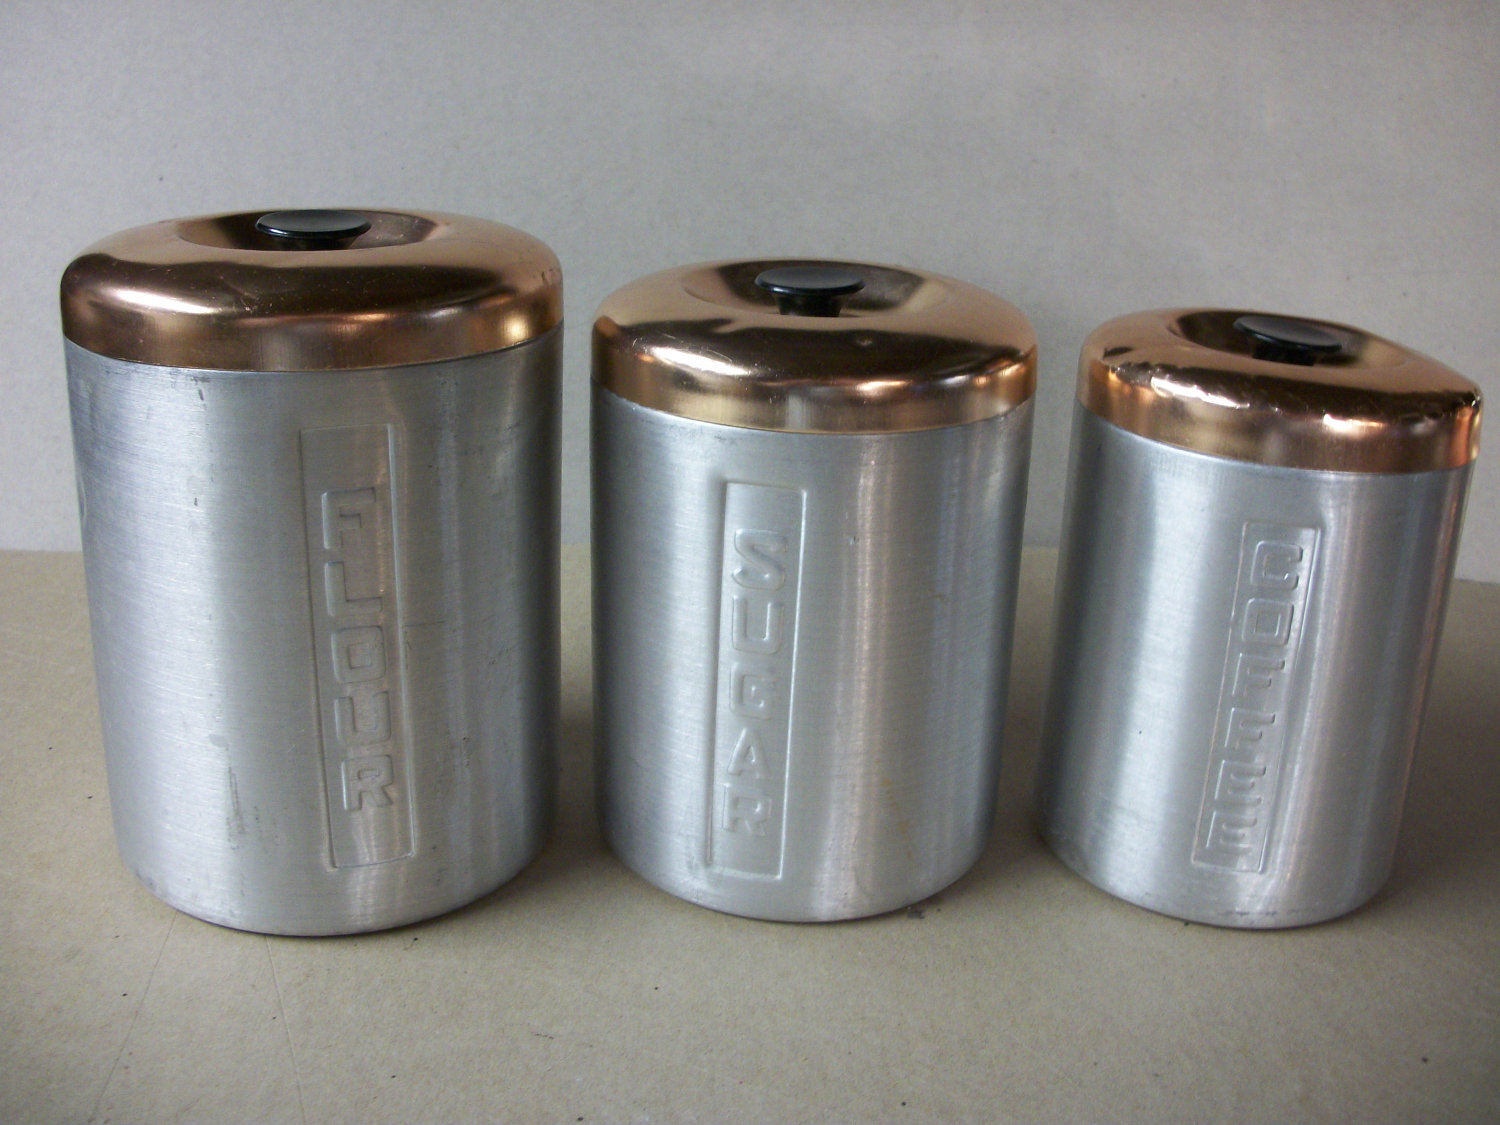 stainless steel canisters kitchen kitchen ideas kitchen canisters stainless steel designcorner